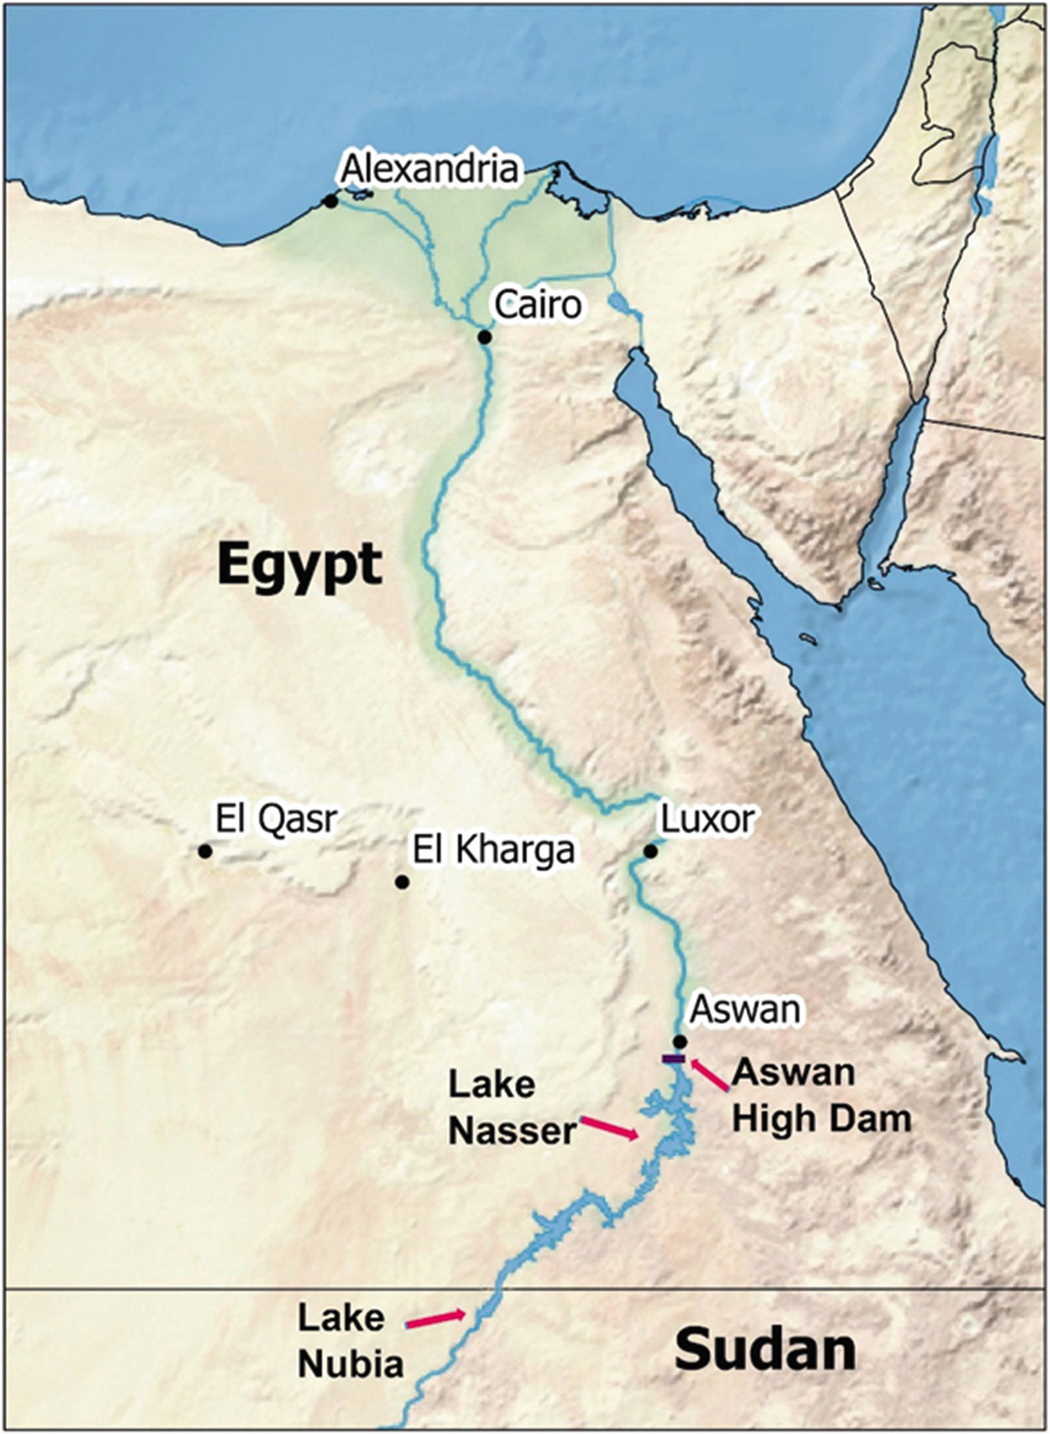 An Overview Of Aswan High Dam And Grand Ethiopian Renaissance Dam